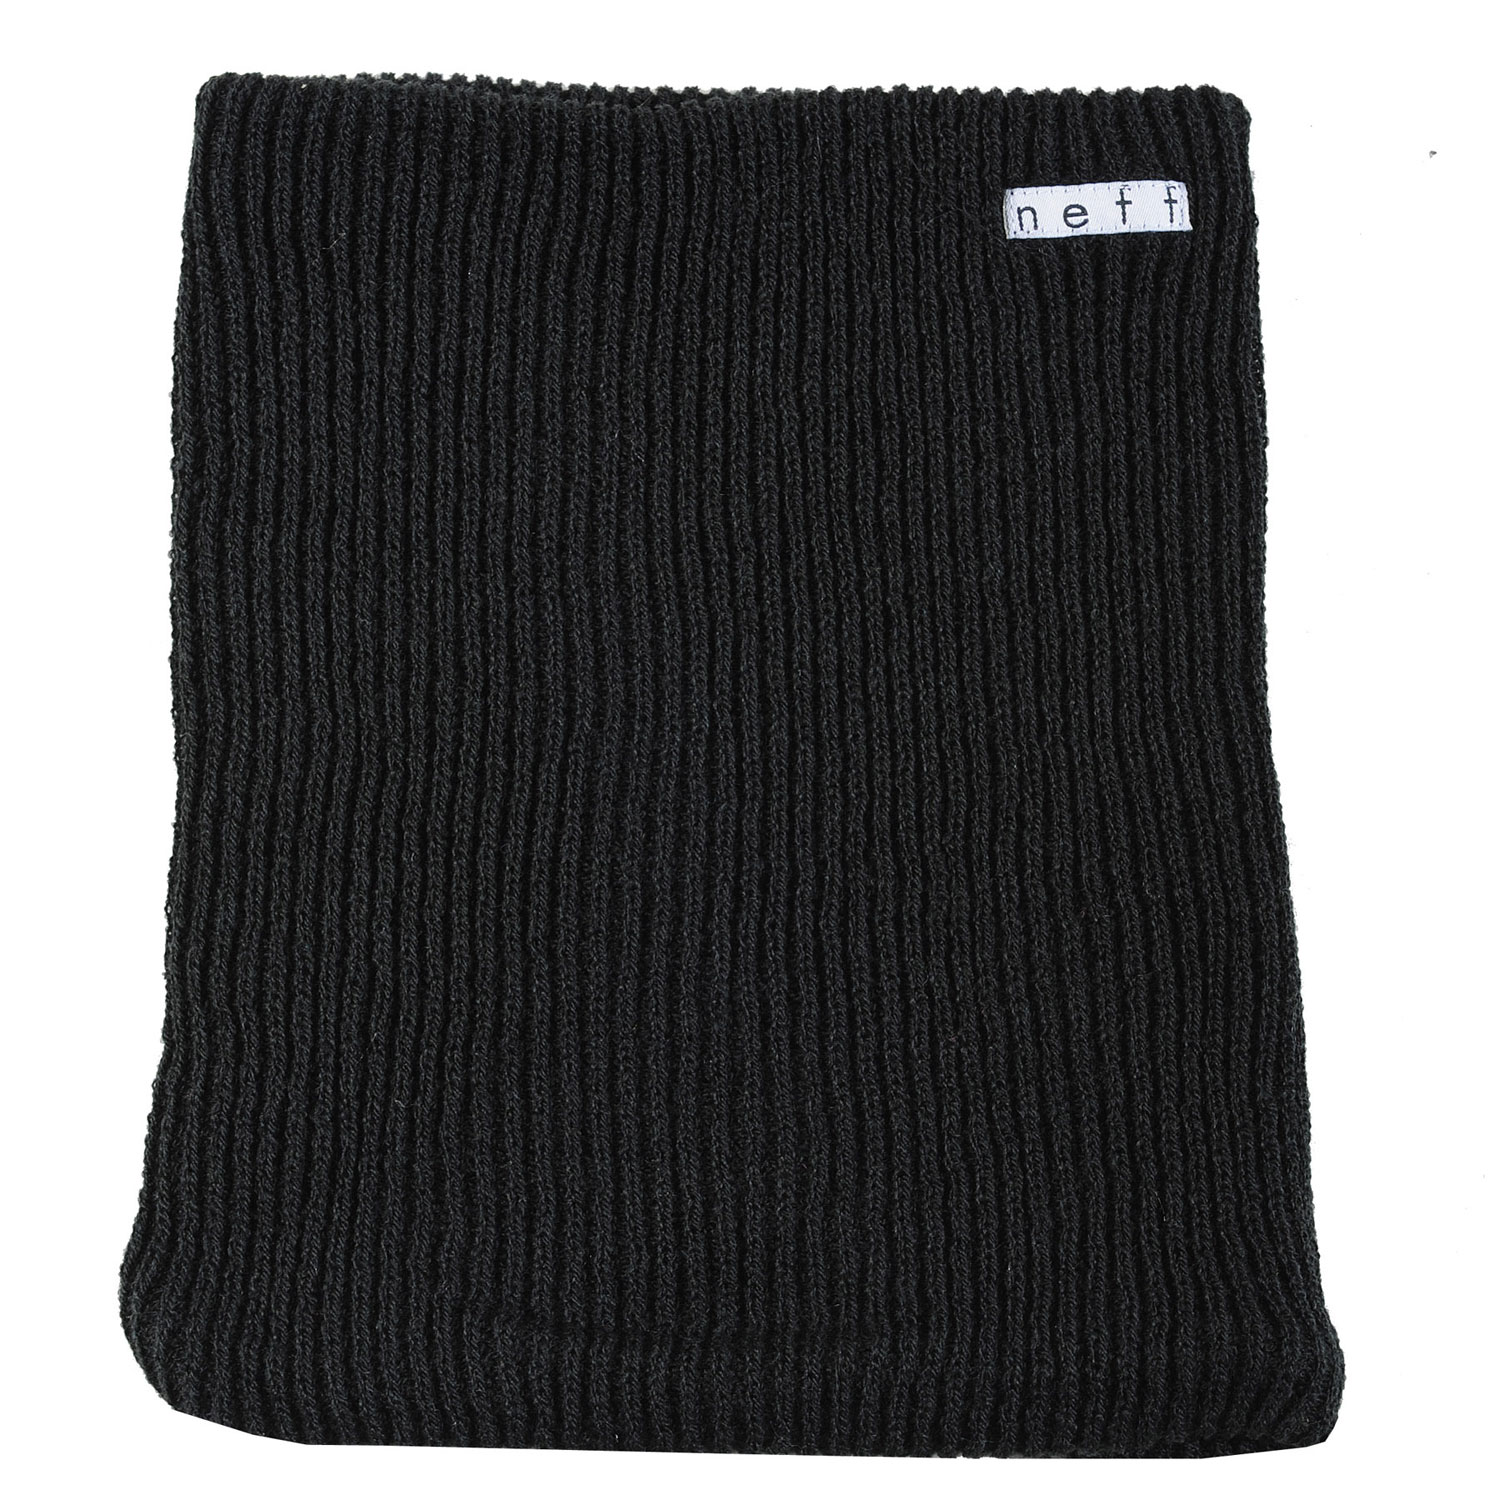 Skateboard Key Features of the Neff Daily Gaiter Facemask: 100% Acrylic - $16.00